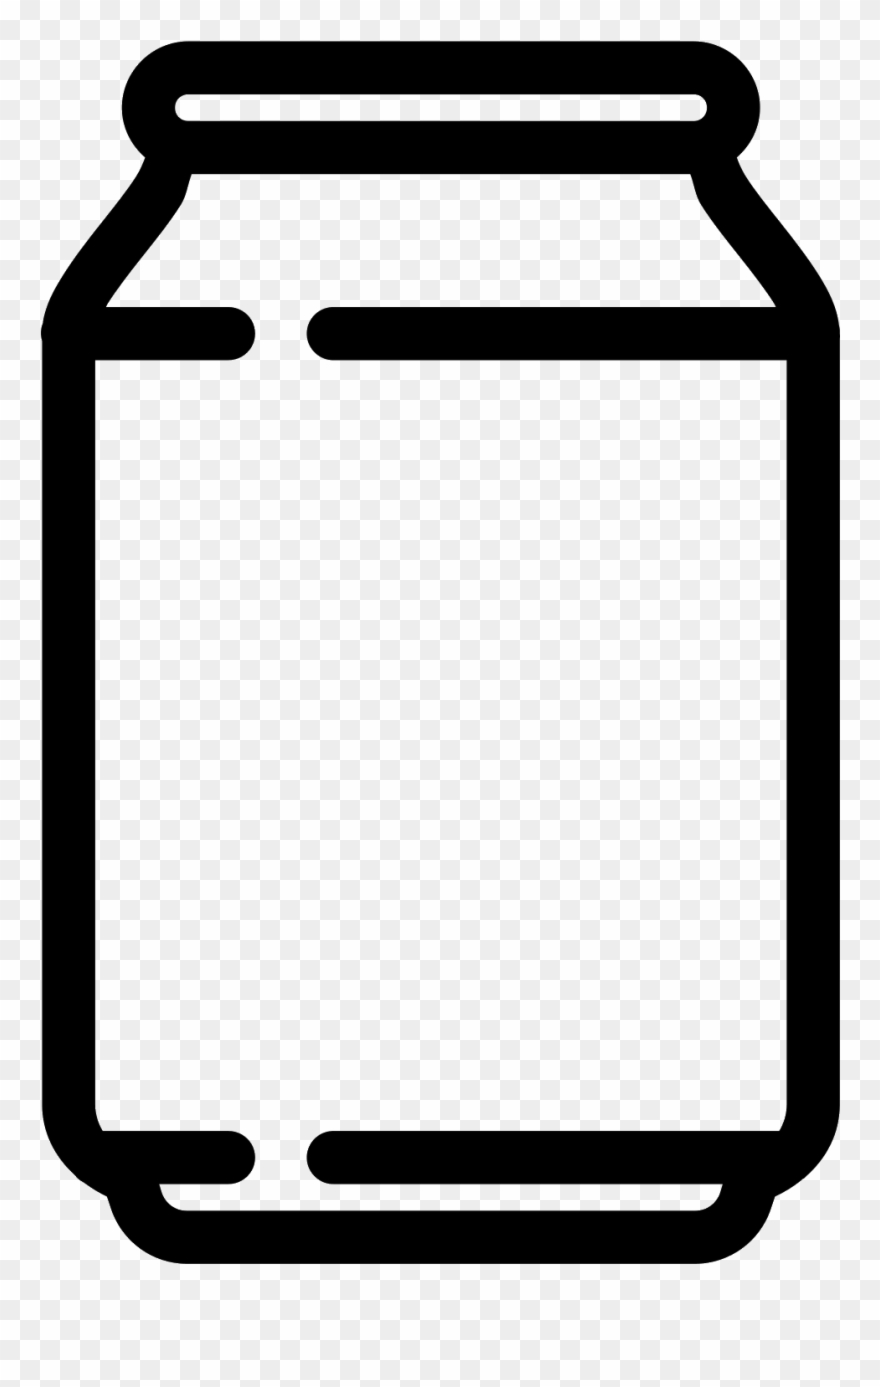 Beer clipart icon. Can pinclipart